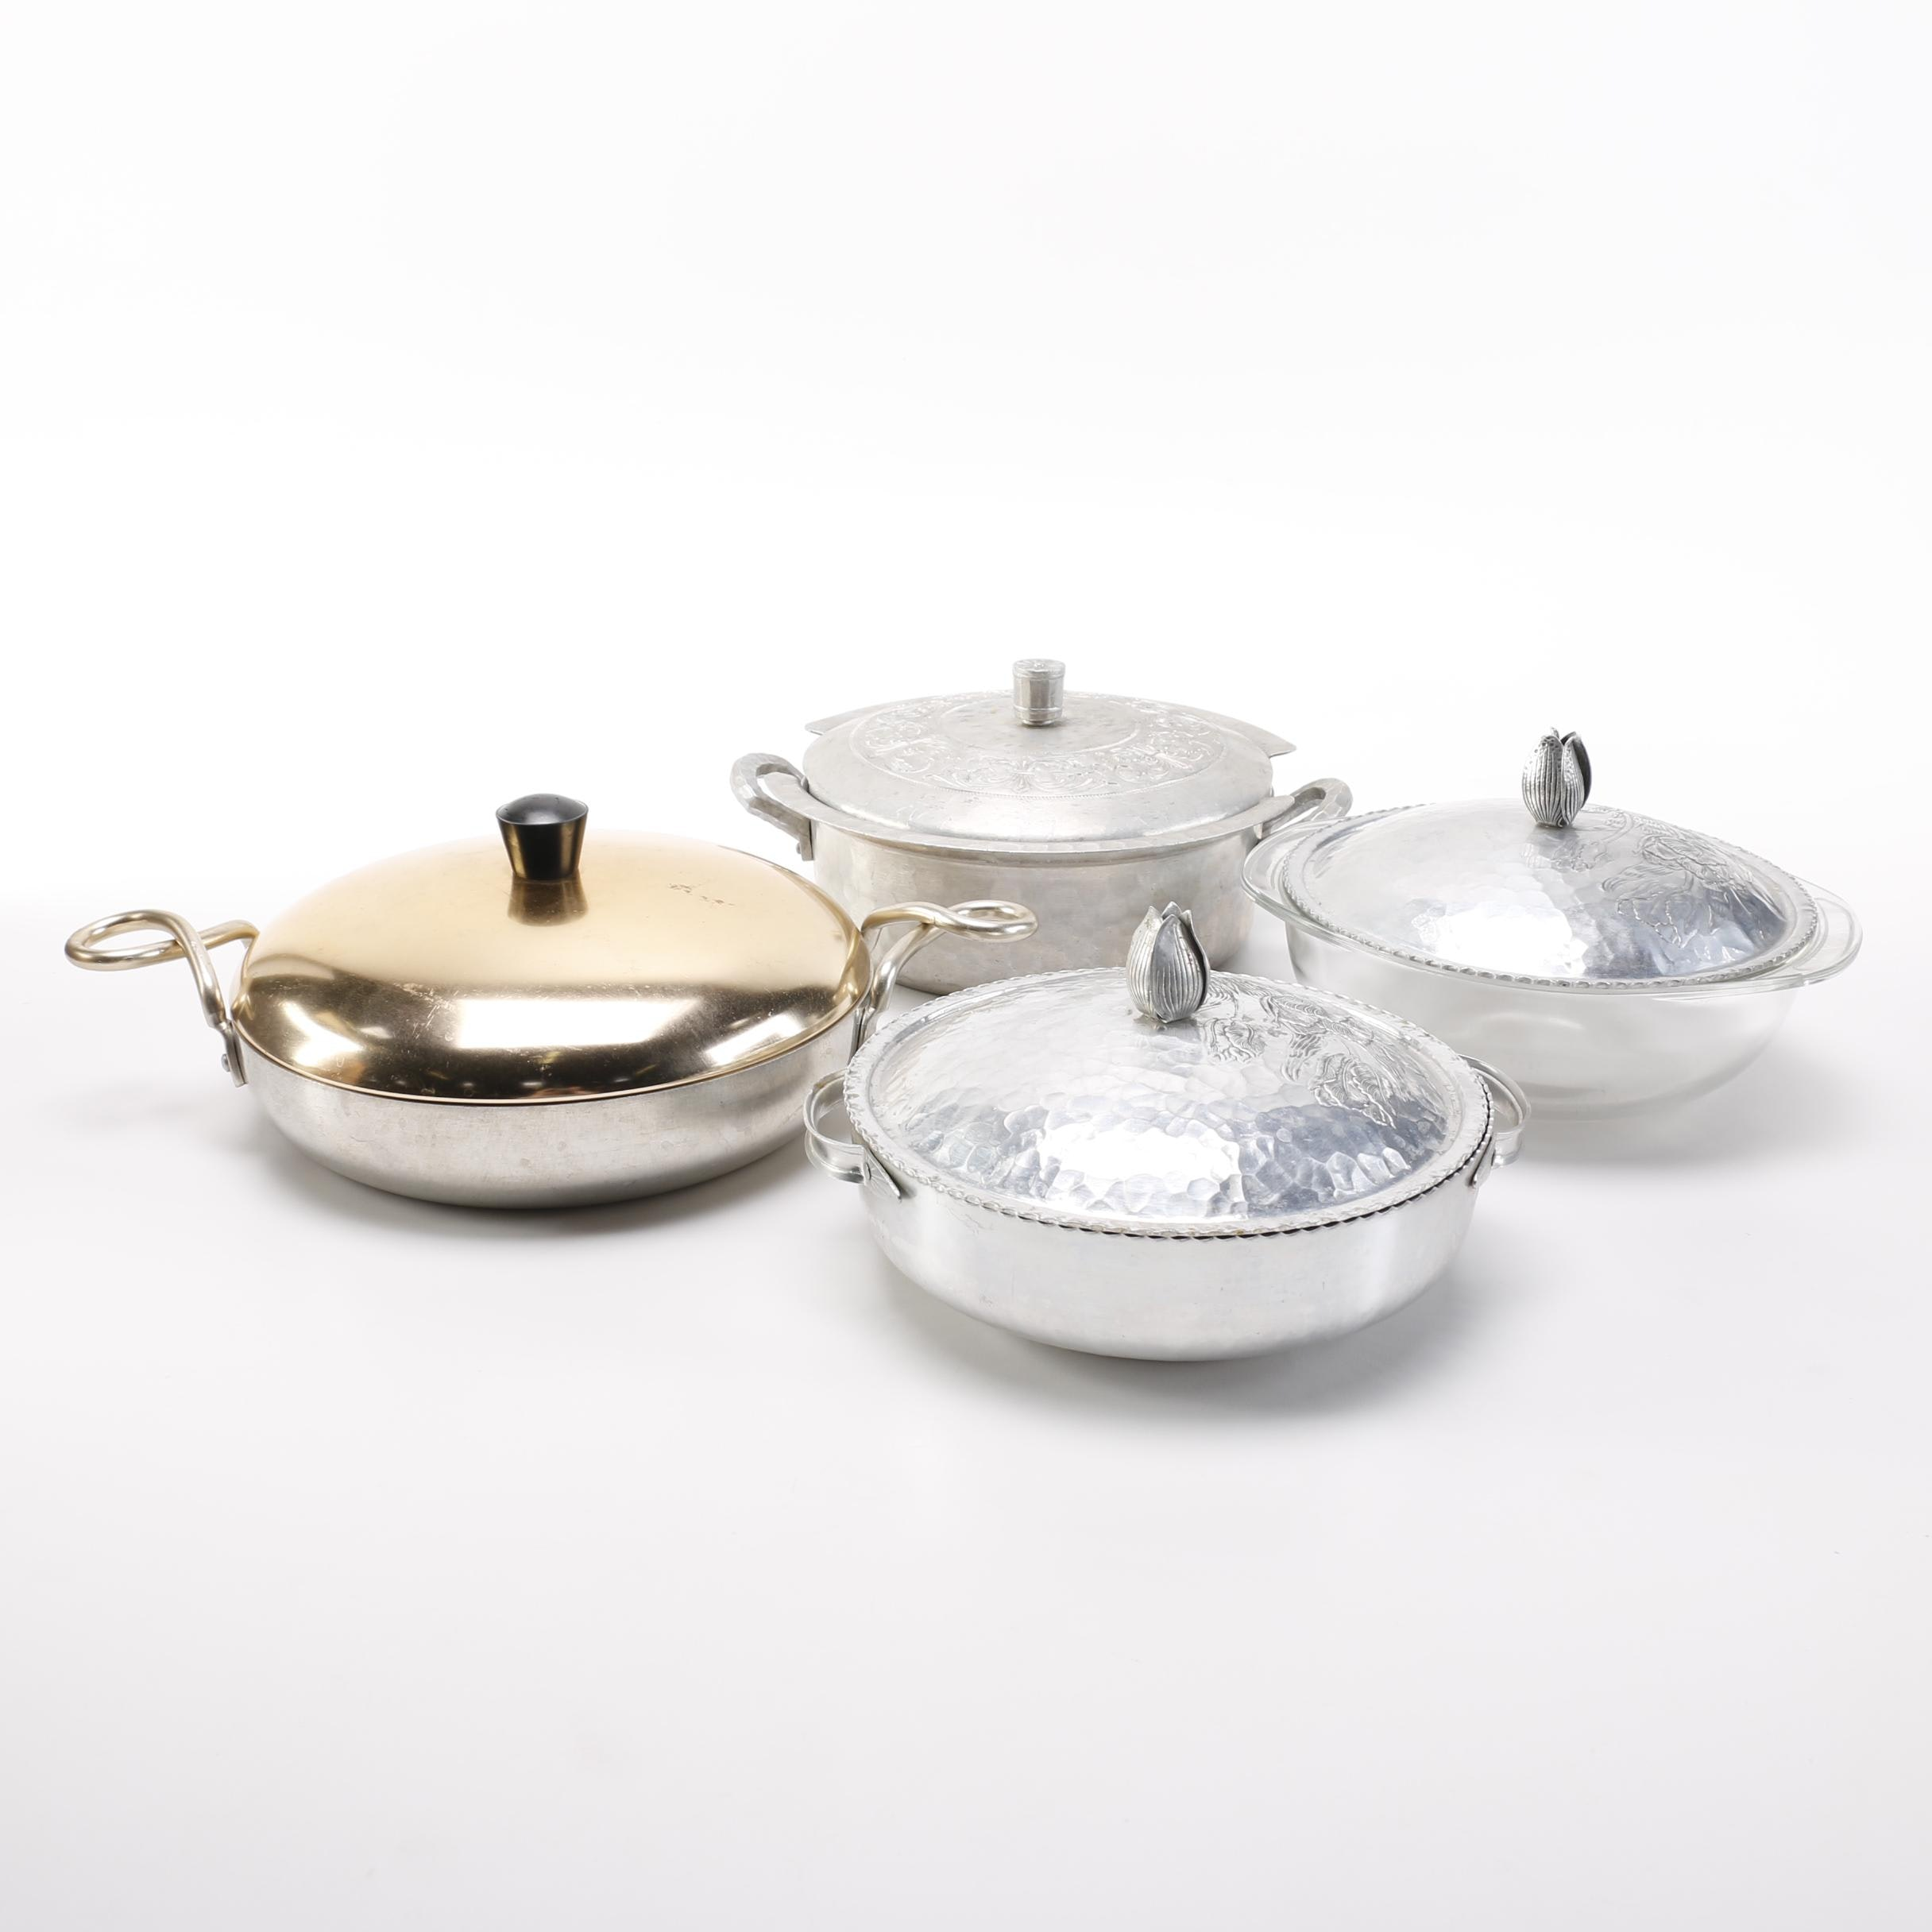 Collection of Aluminum 1940's Cookware and Others